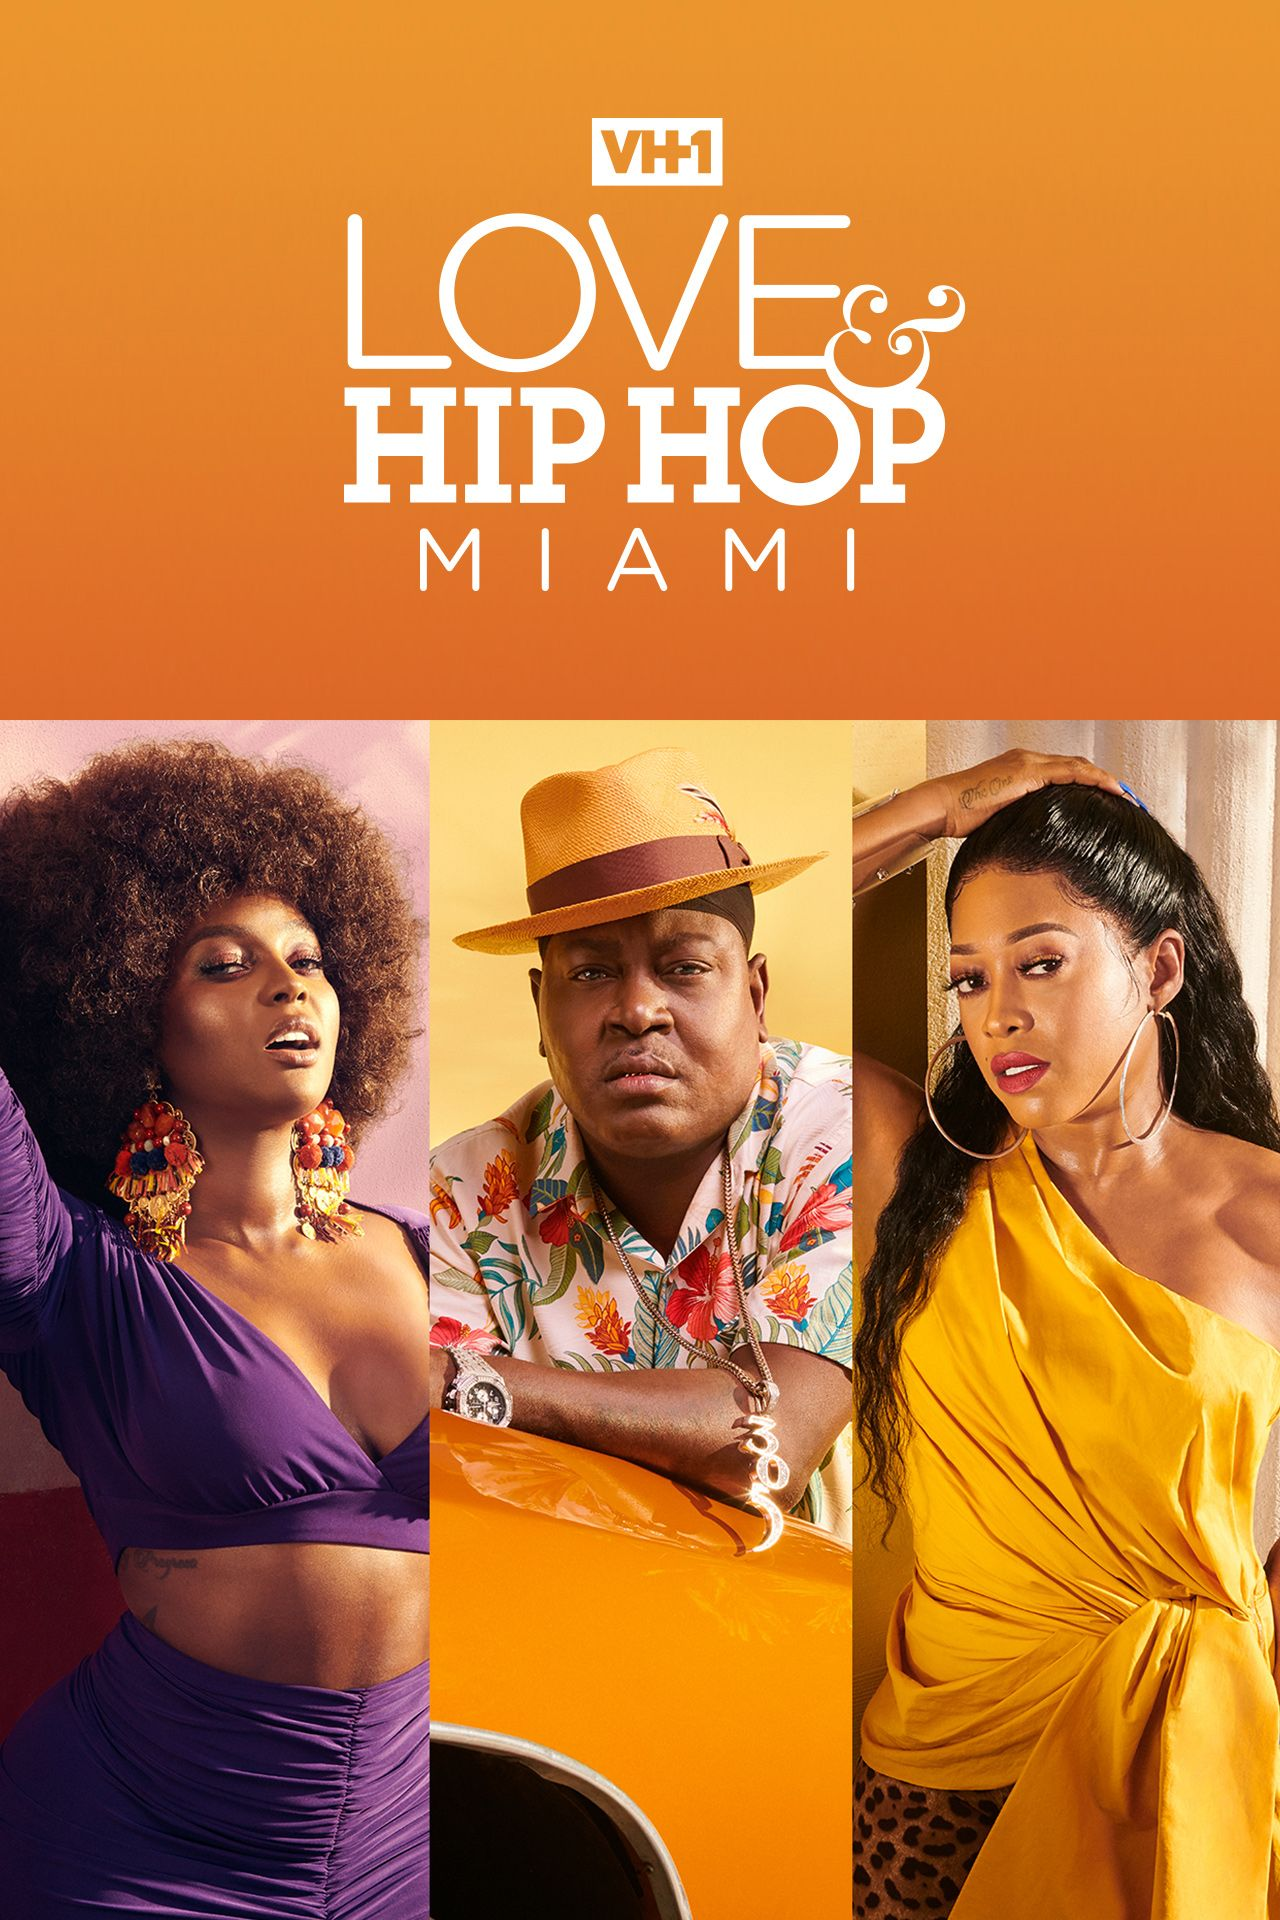 a68c7a482c243 Love & Hip Hop Miami TV Series Cast Members | VH1